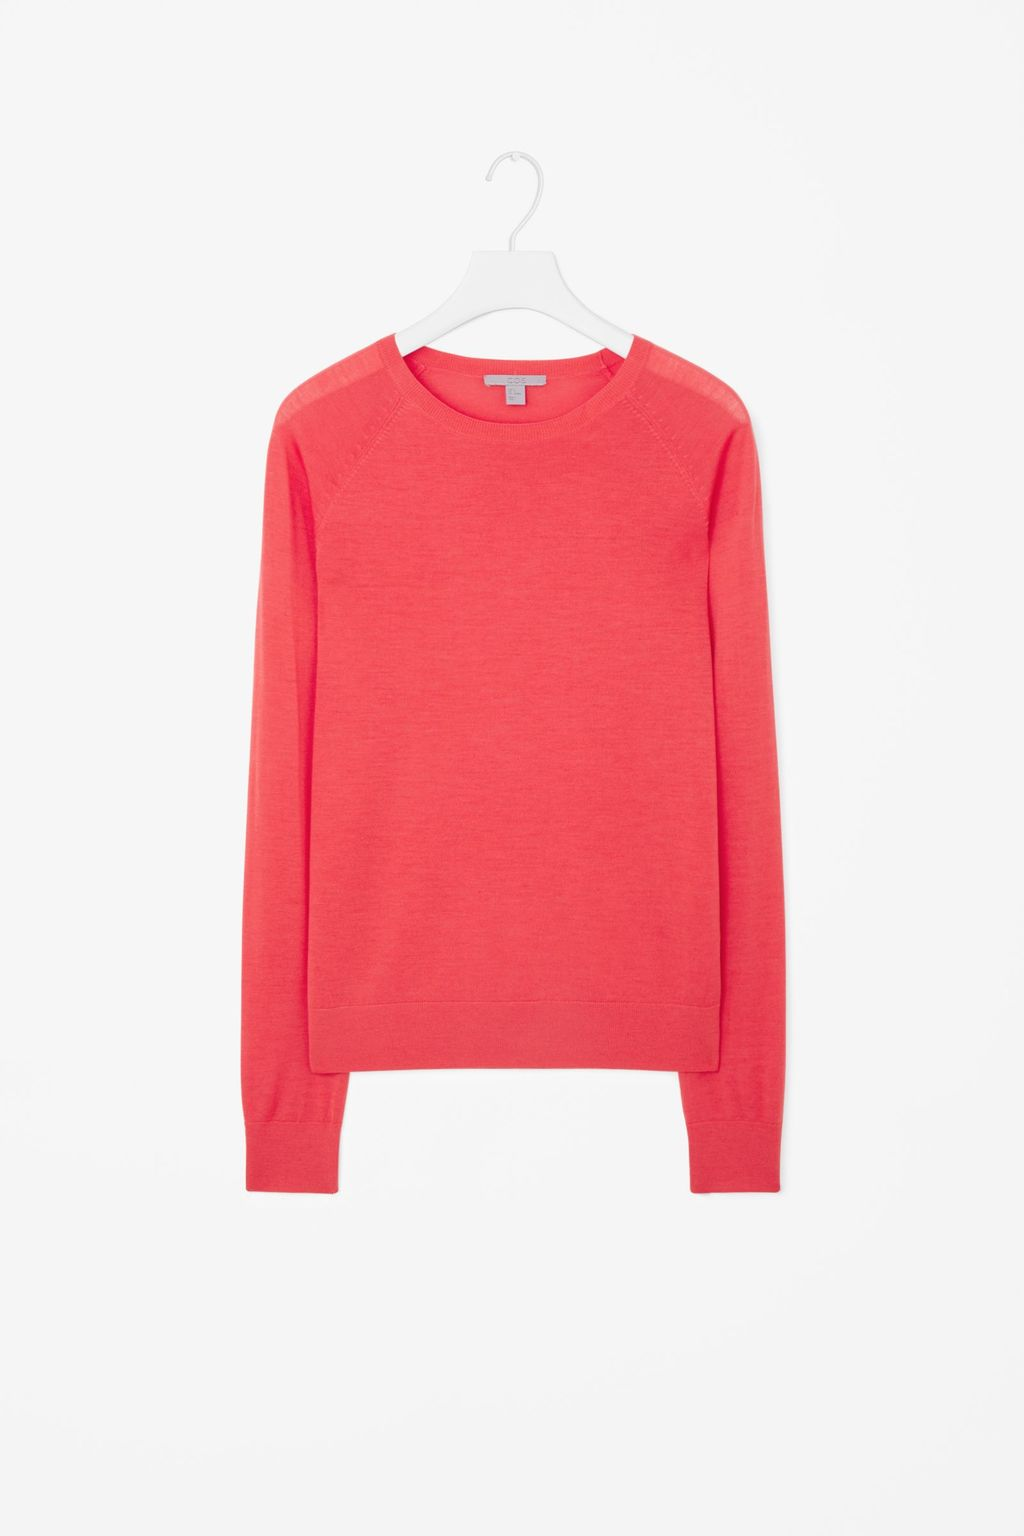 Round Neck Knit Jumper - pattern: plain; length: below the bottom; style: standard; predominant colour: hot pink; occasions: casual, creative work; fibres: wool - 100%; fit: loose; neckline: crew; sleeve length: long sleeve; sleeve style: standard; texture group: knits/crochet; pattern type: knitted - fine stitch; season: a/w 2015